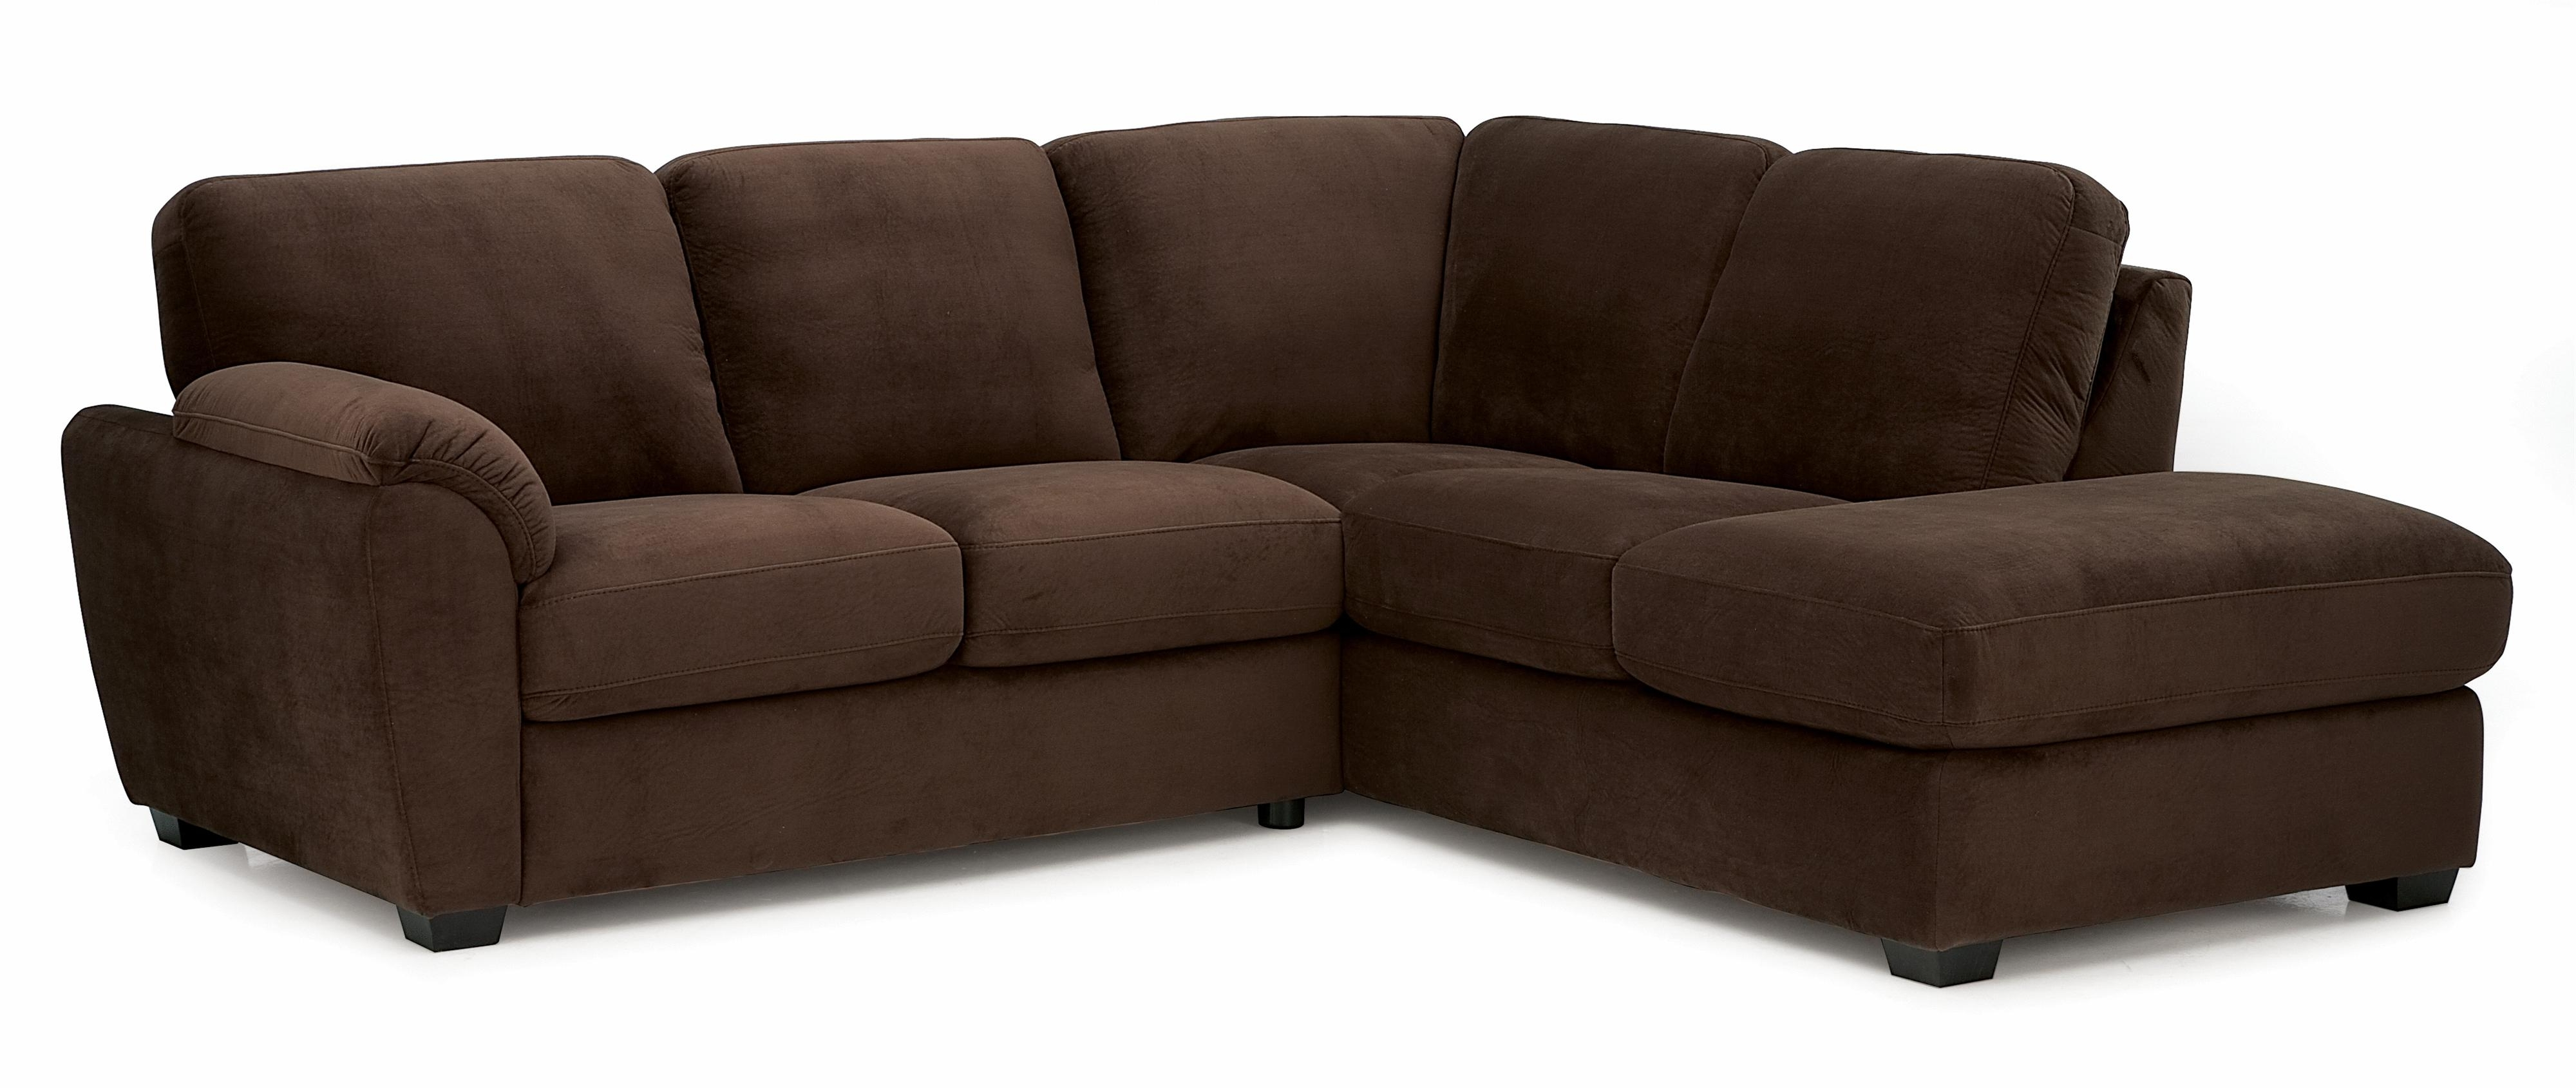 St Cloud Mn Sectional Sofas Inside Most Recent Palliser Lanza Casual Sectional Sofa With Rhf Corner Chaise – Ahfa (View 14 of 20)